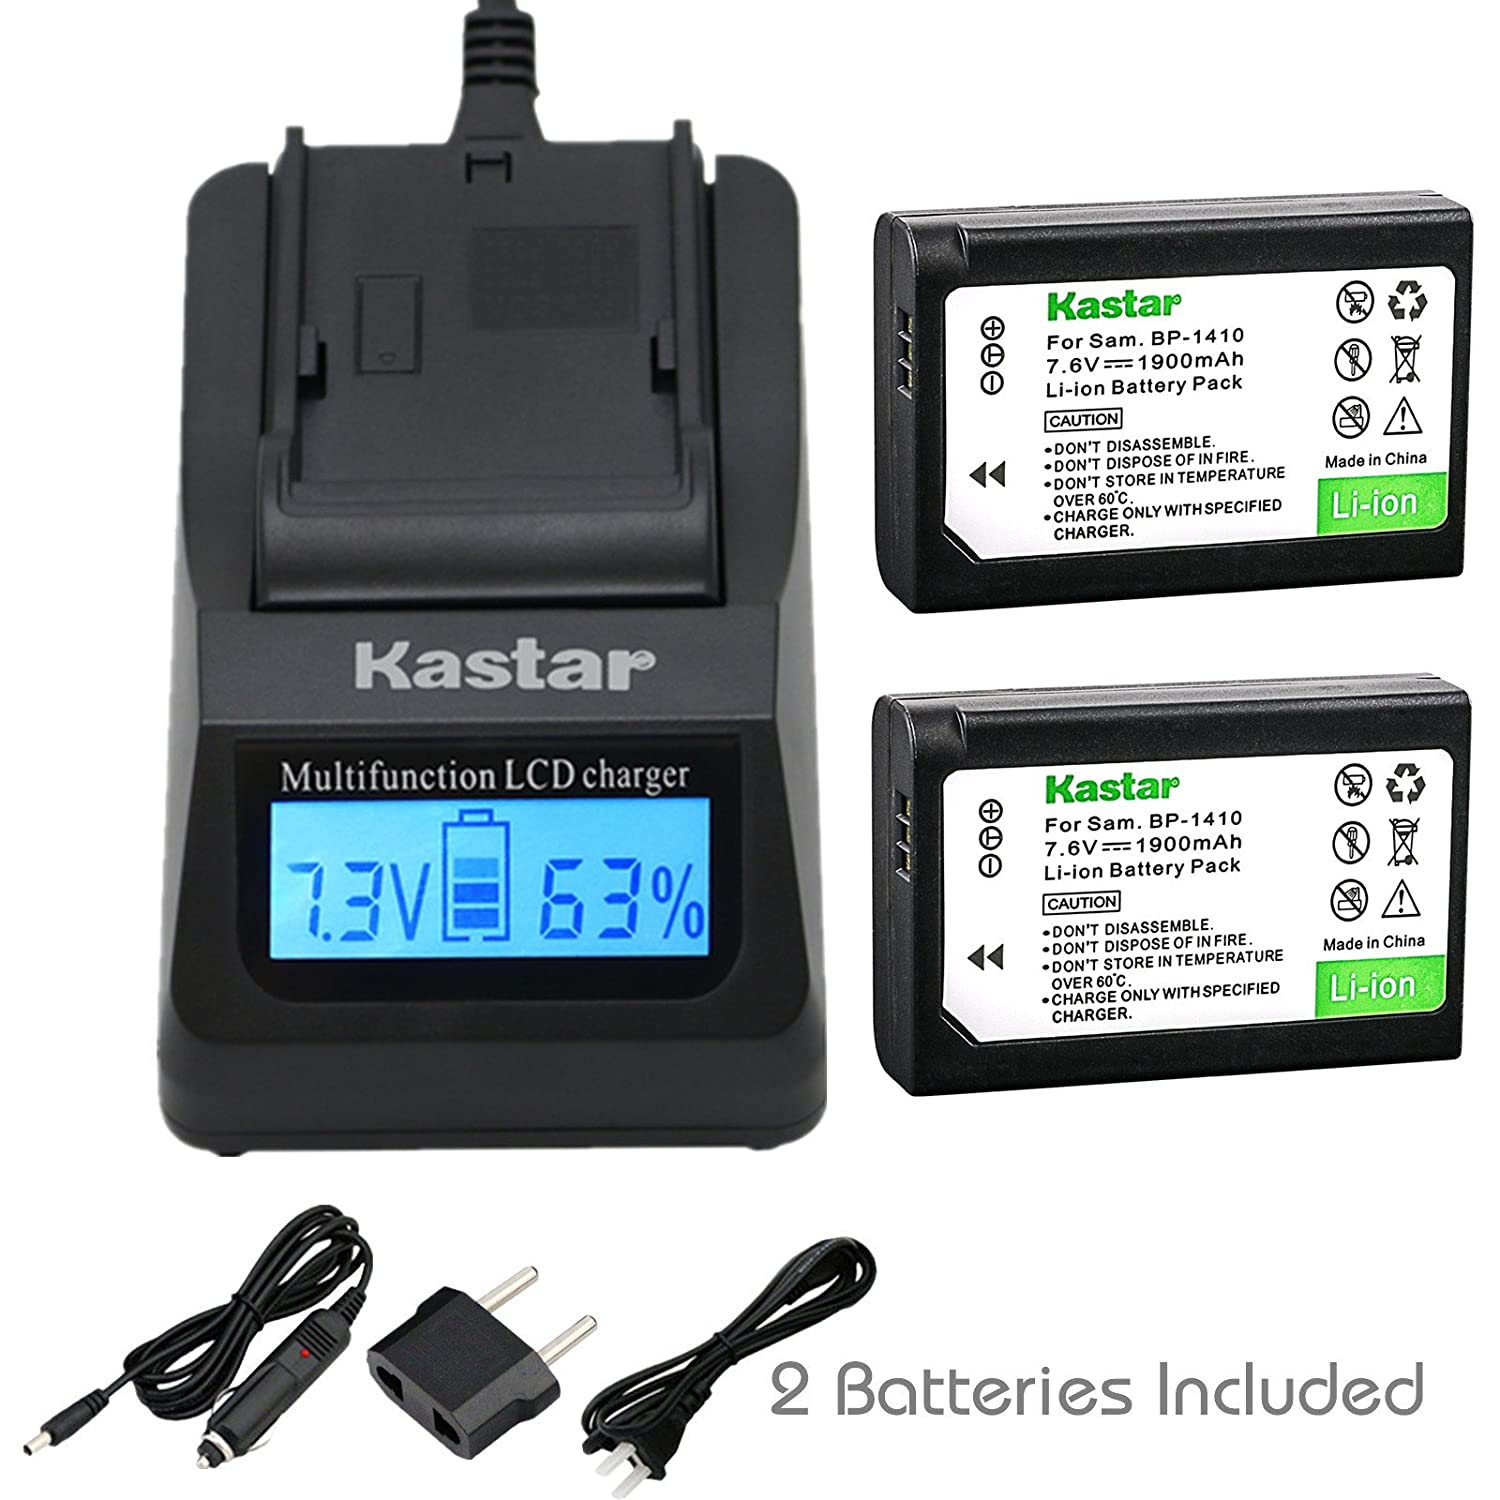 Kastar超高速充電器( 3 x Faster )キットand bp-1410 Battery ( 2 - Pack ) for Samsung bp1410 and Samsung nx30 wb2200 Fデジタルカメラ B01E2YCI5E